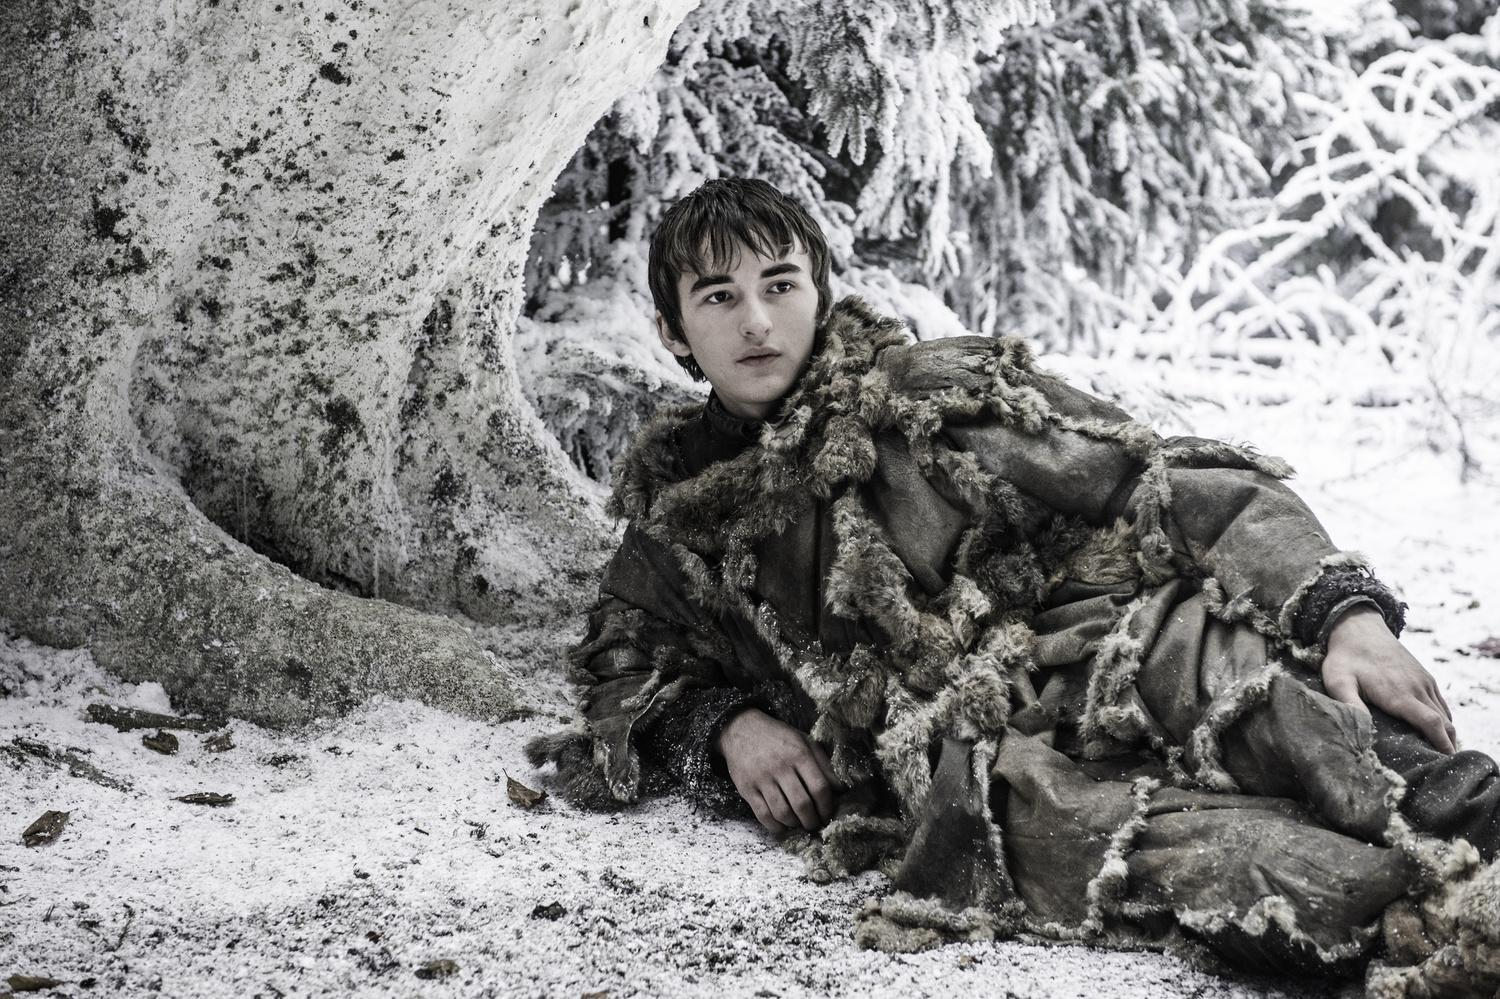 Winter Melancholy Creeps In This Petty >> Updated New Photos From The Game Of Thrones Season 6 Finale The